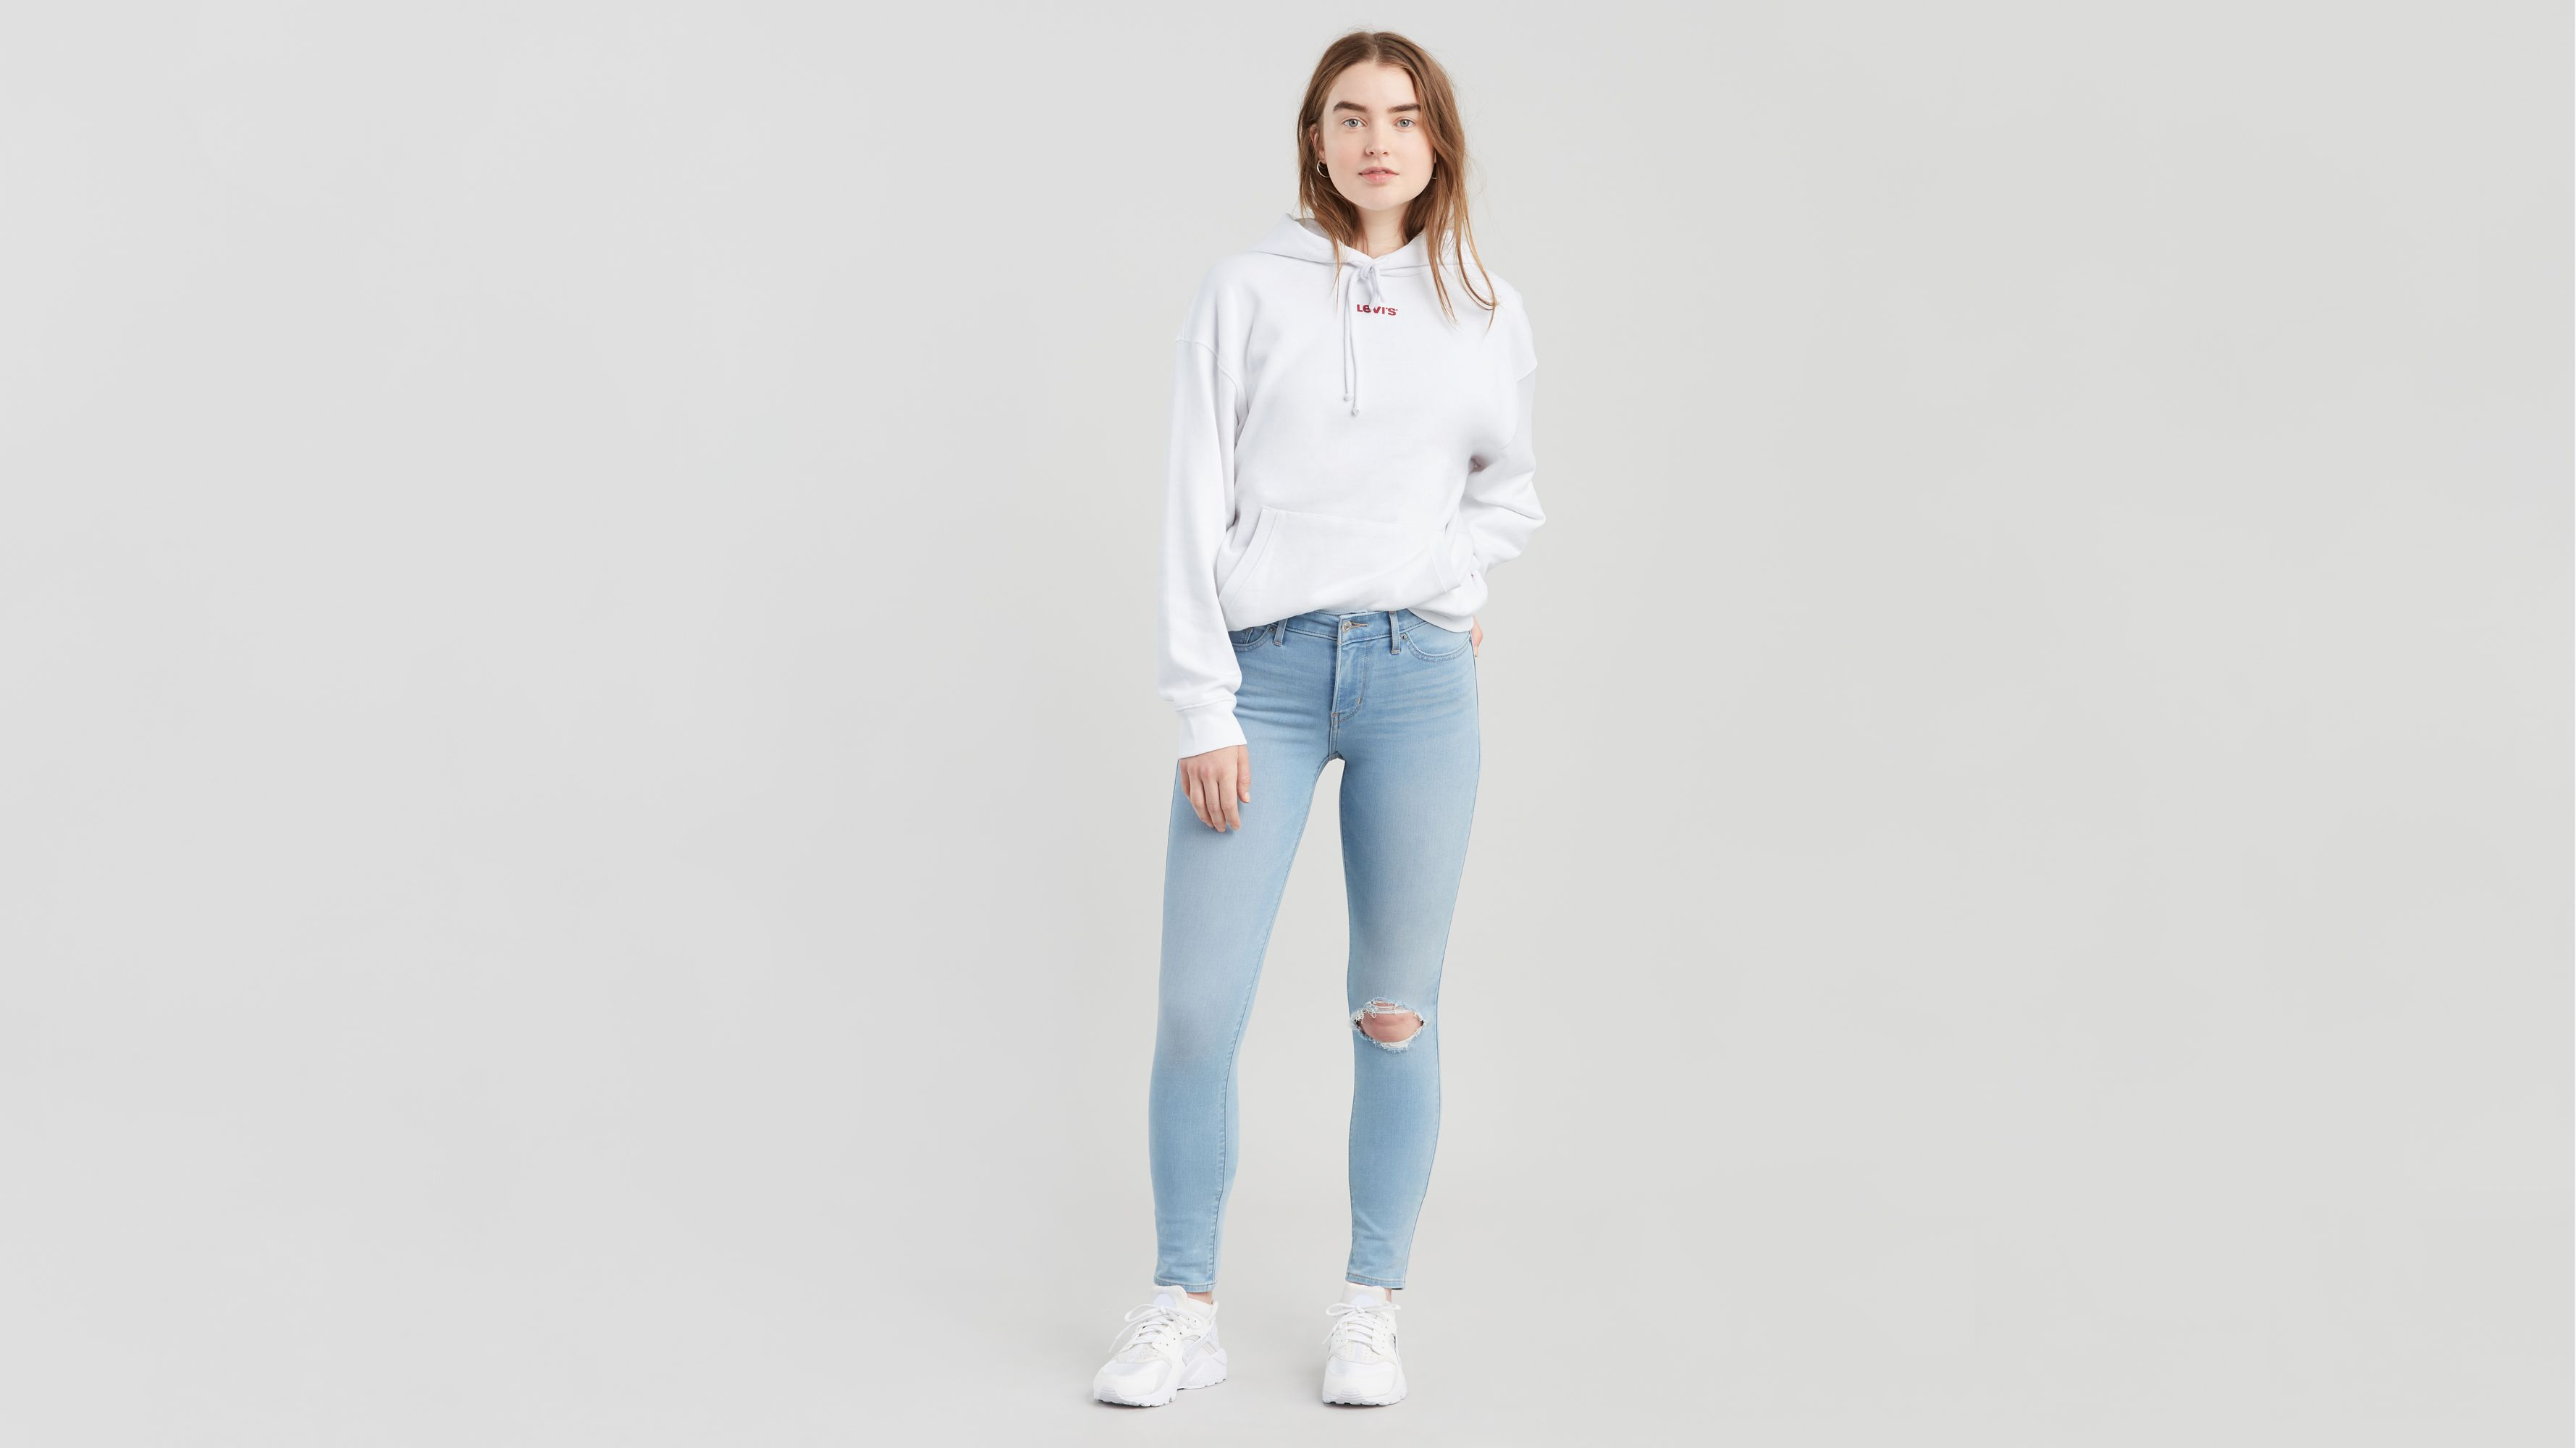 Levi's® Us Women amp; Jeans Shop For Ripped Distressed xwXnY0U8Pq